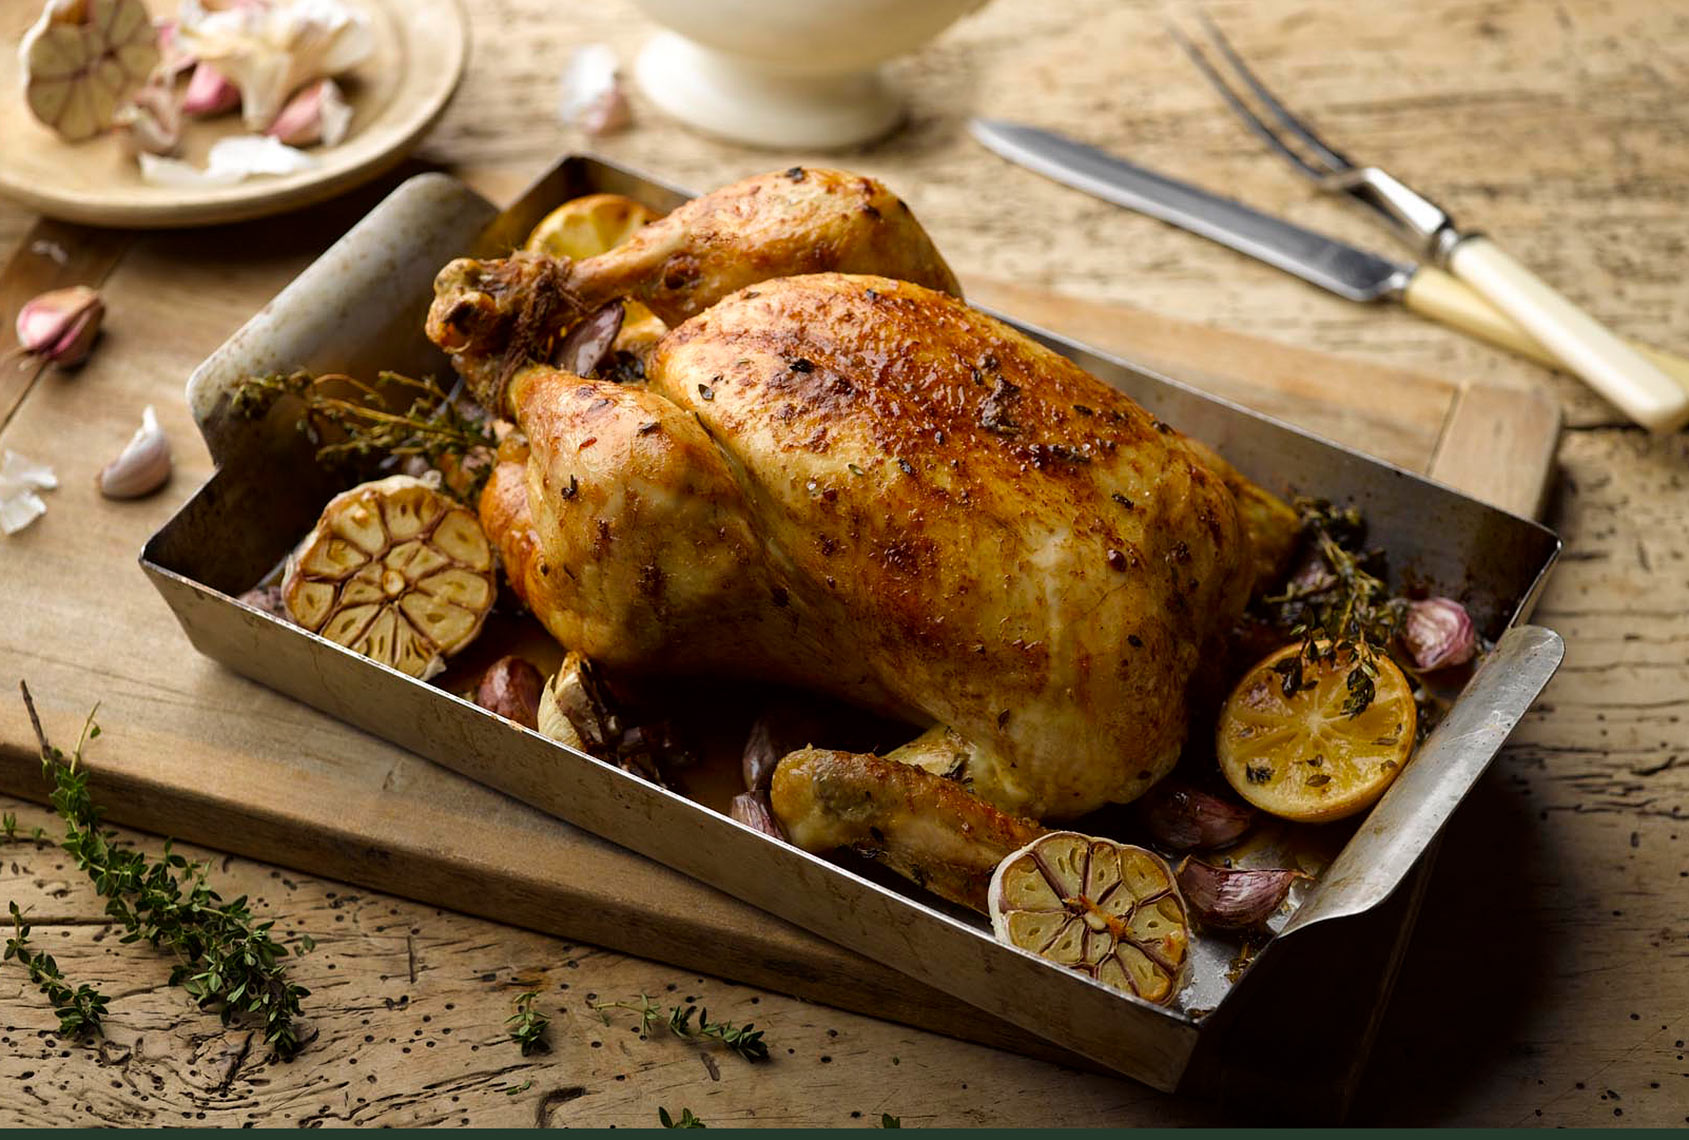 Roast chicken | Colin Campbell - Food Photographer